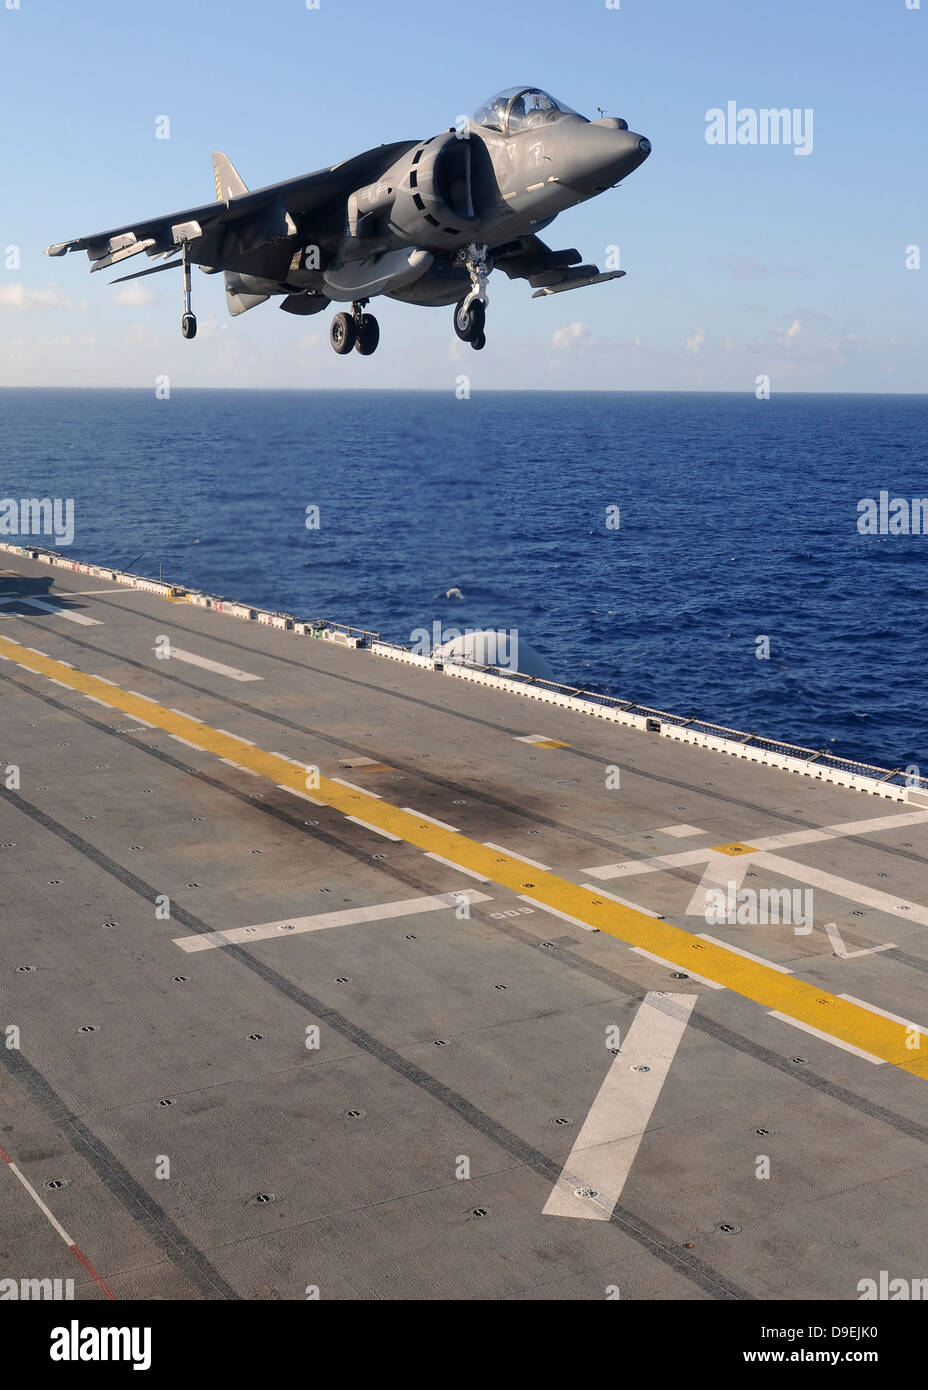 An AV-8B Harrier jet prepares to land on the flight deck of USS Essex. Stock Photo